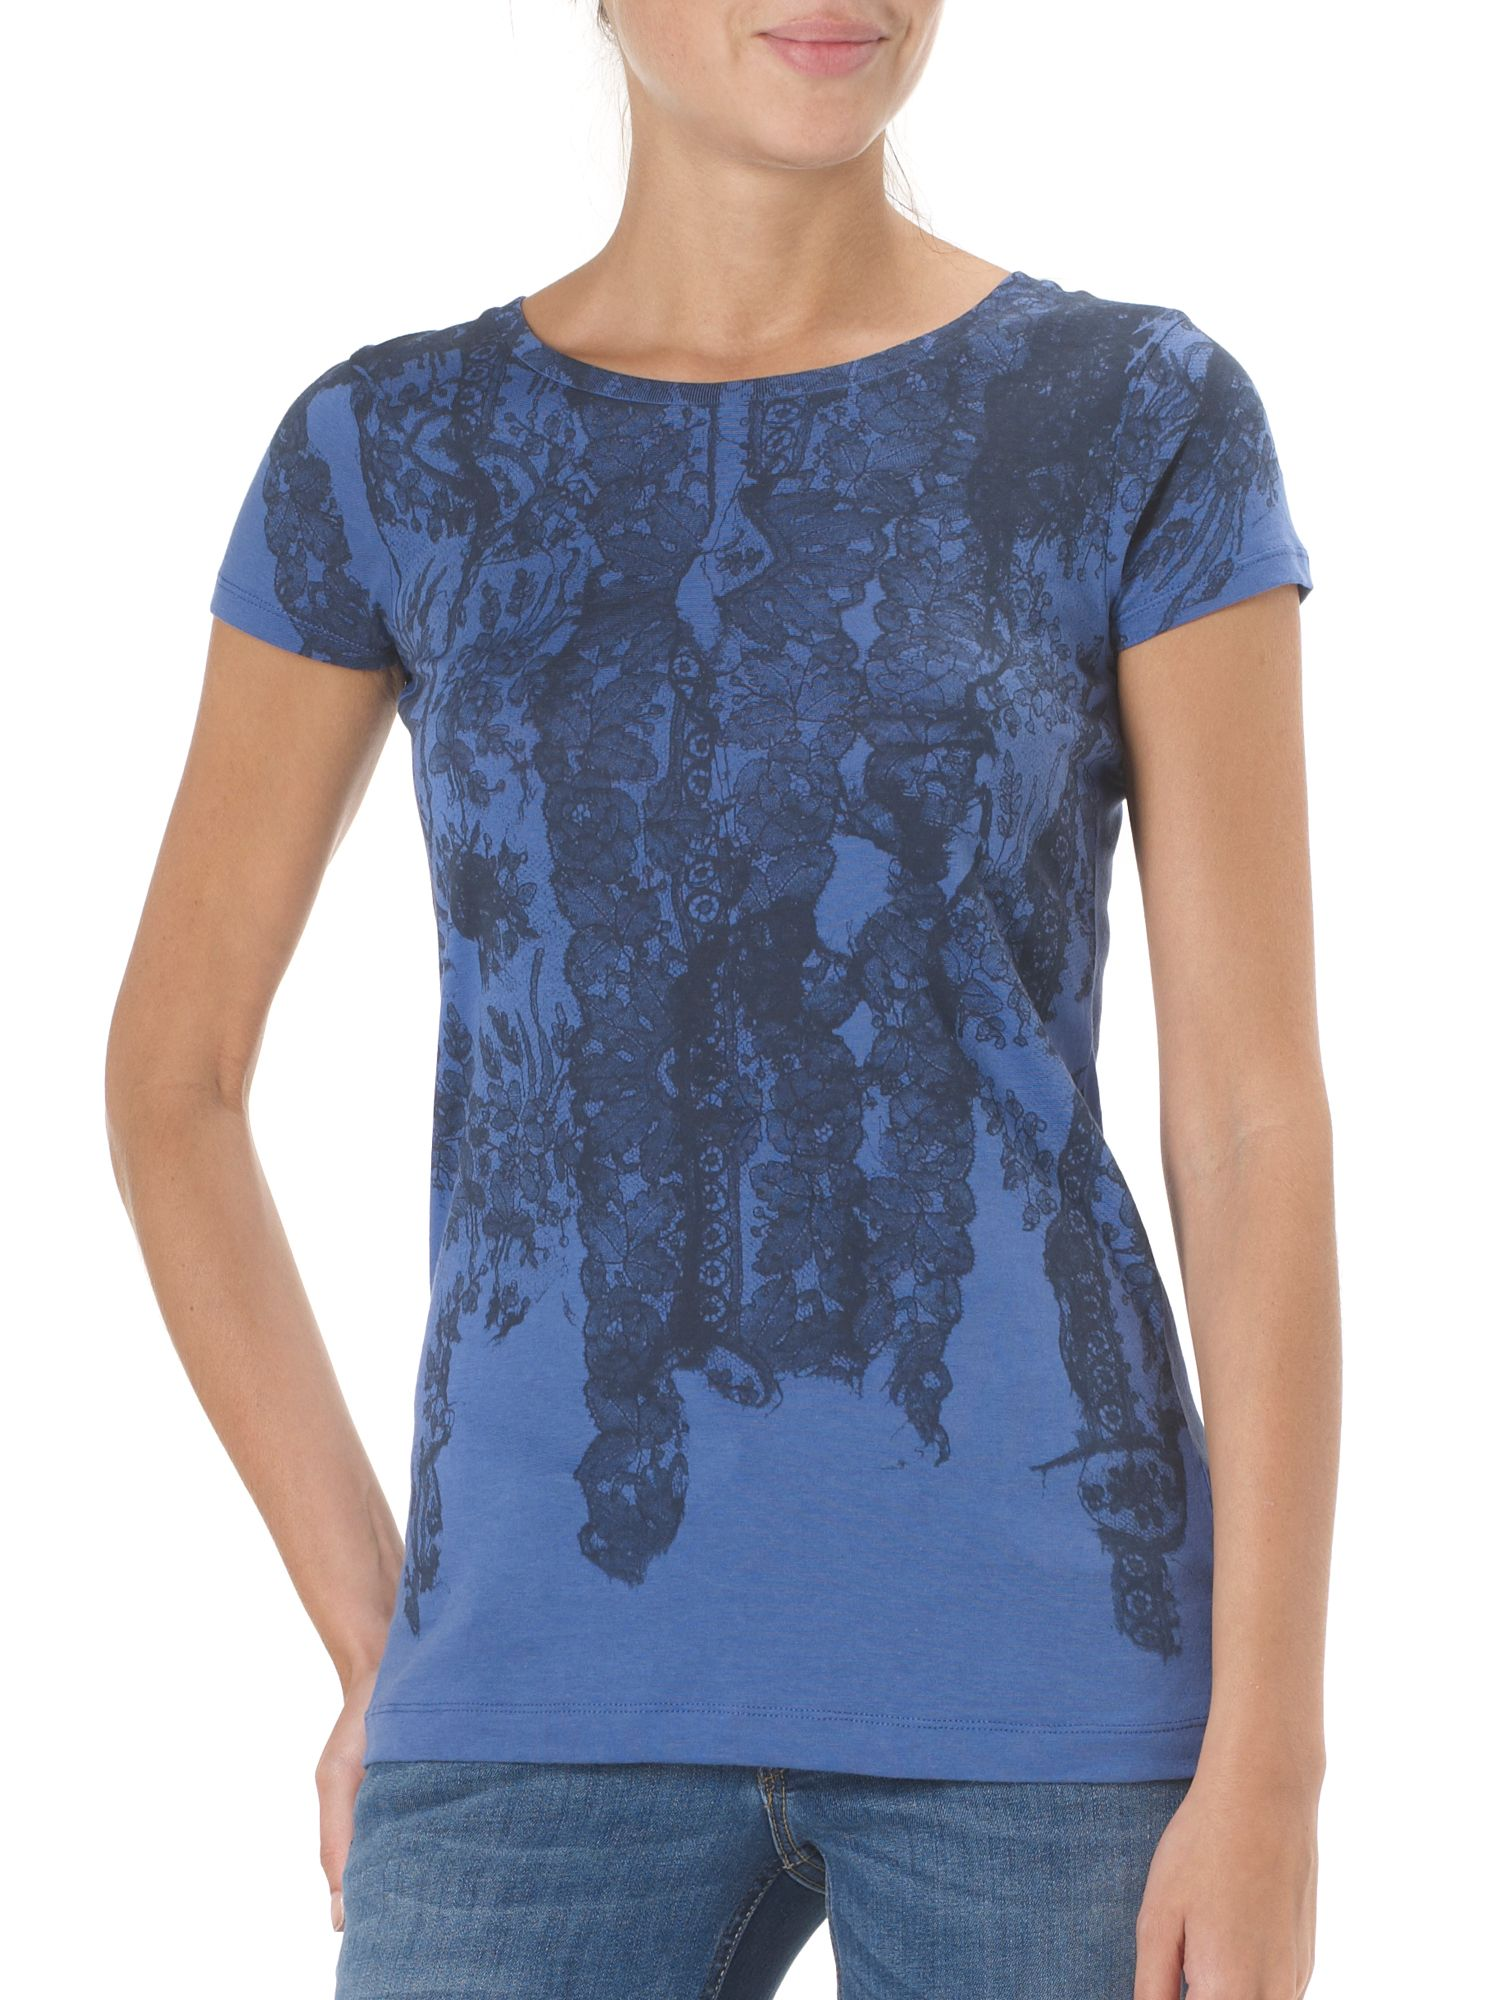 Lee Womens Lee Lee lacey t-shirt, Blue 140504087 product image